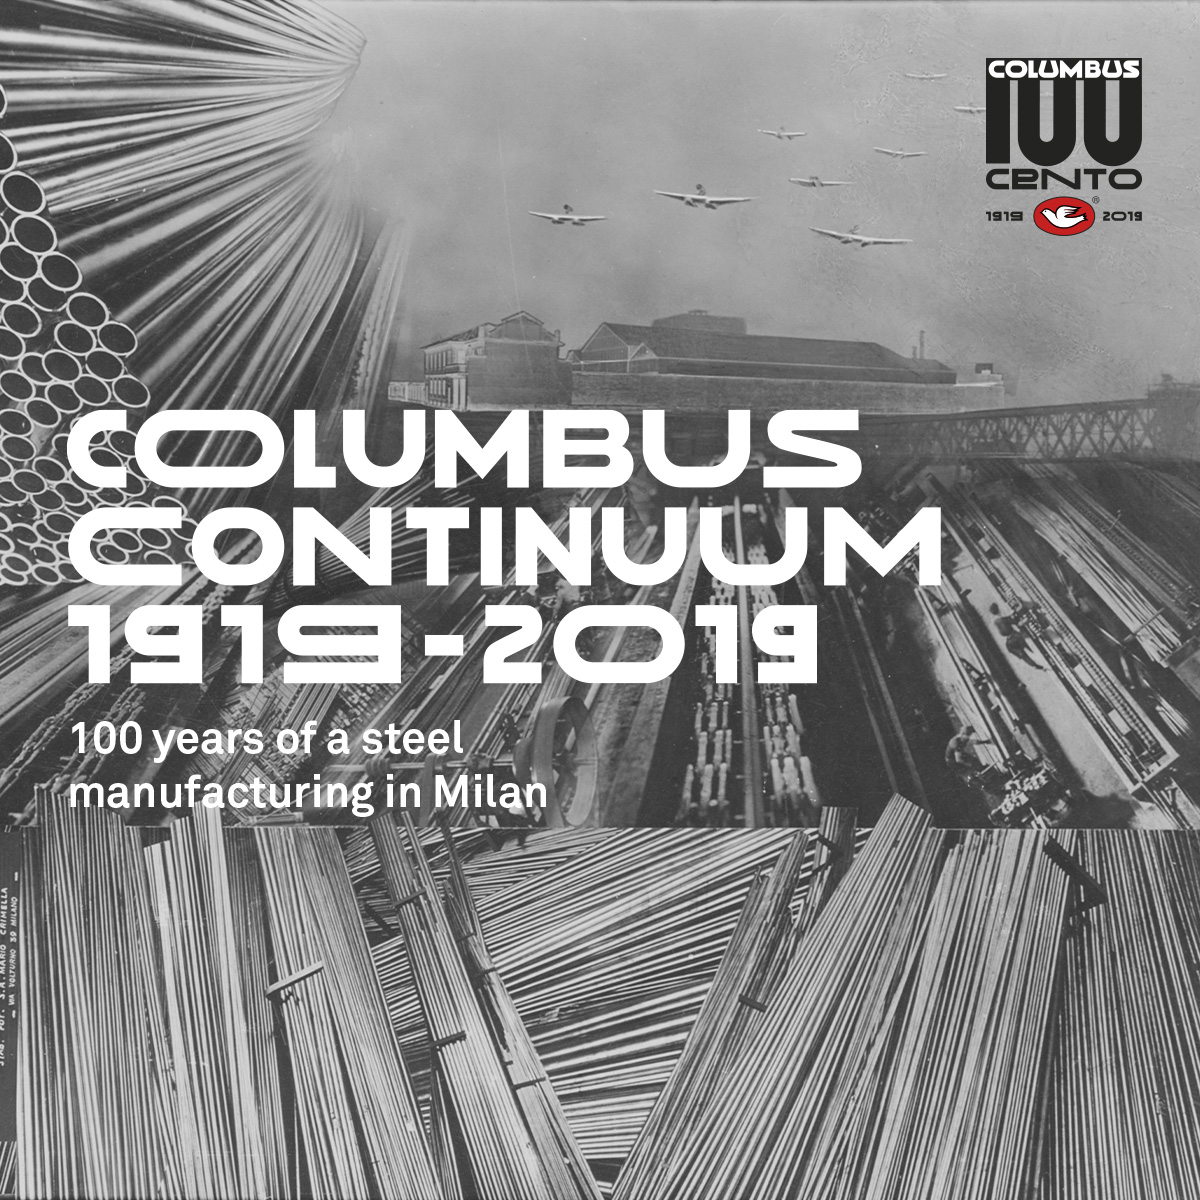 Columbus Continuum 100 Years Celebrations